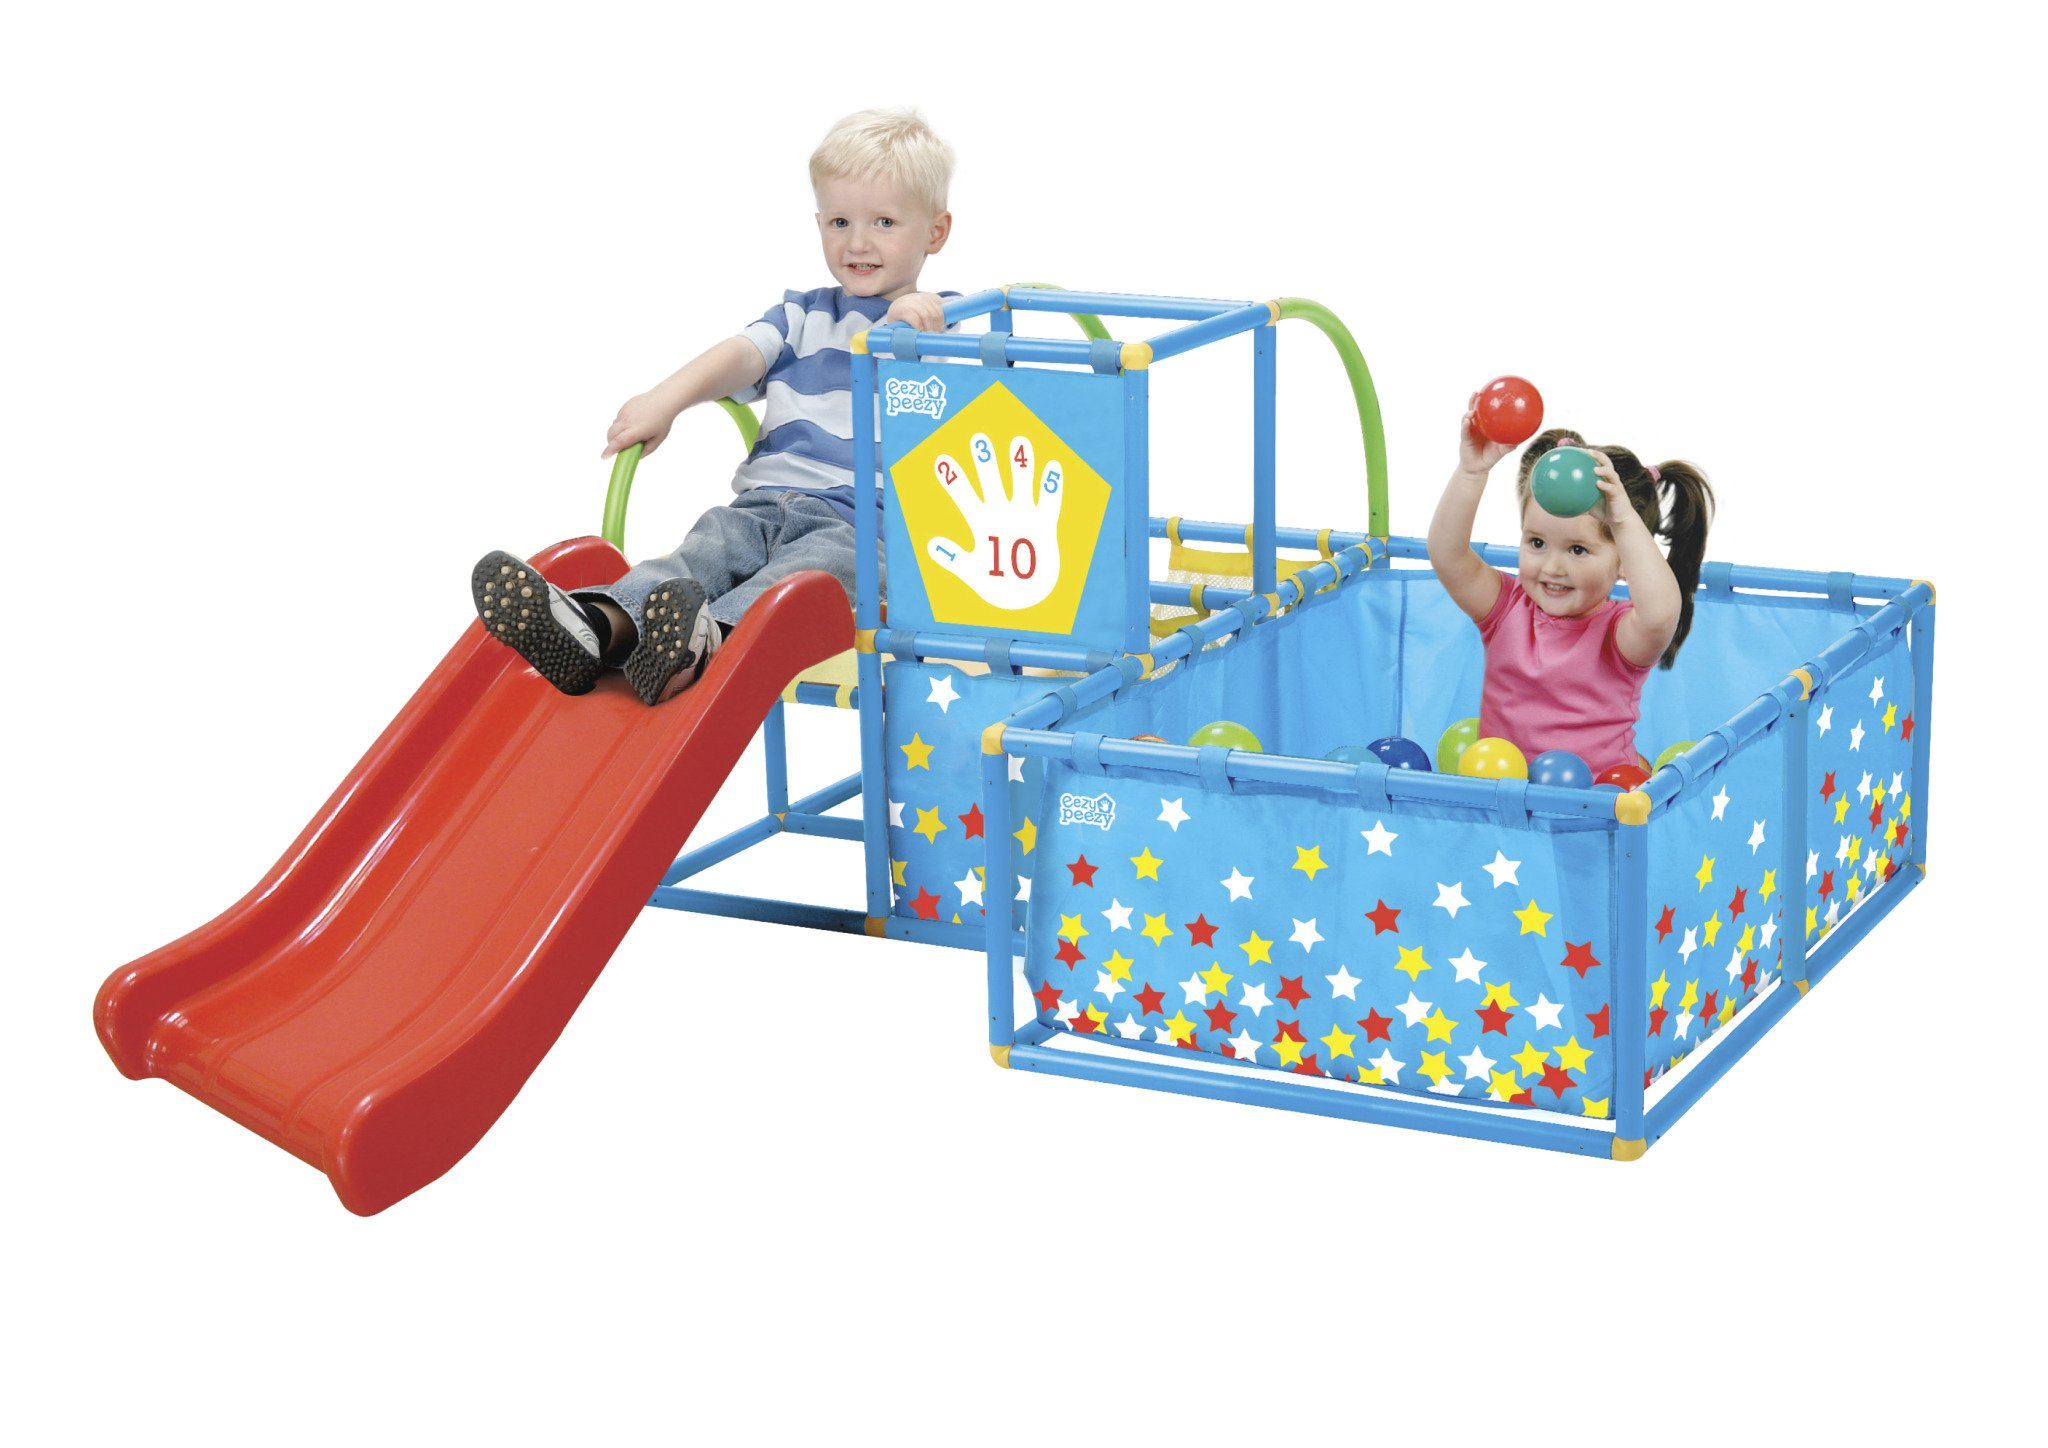 Eezy Peezy Active Play 3 in 1 Jungle Gym PlaySet - Includes Slide, Ball Pit, & Toss Target with 50 Colorful Balls by Eezy Peezy